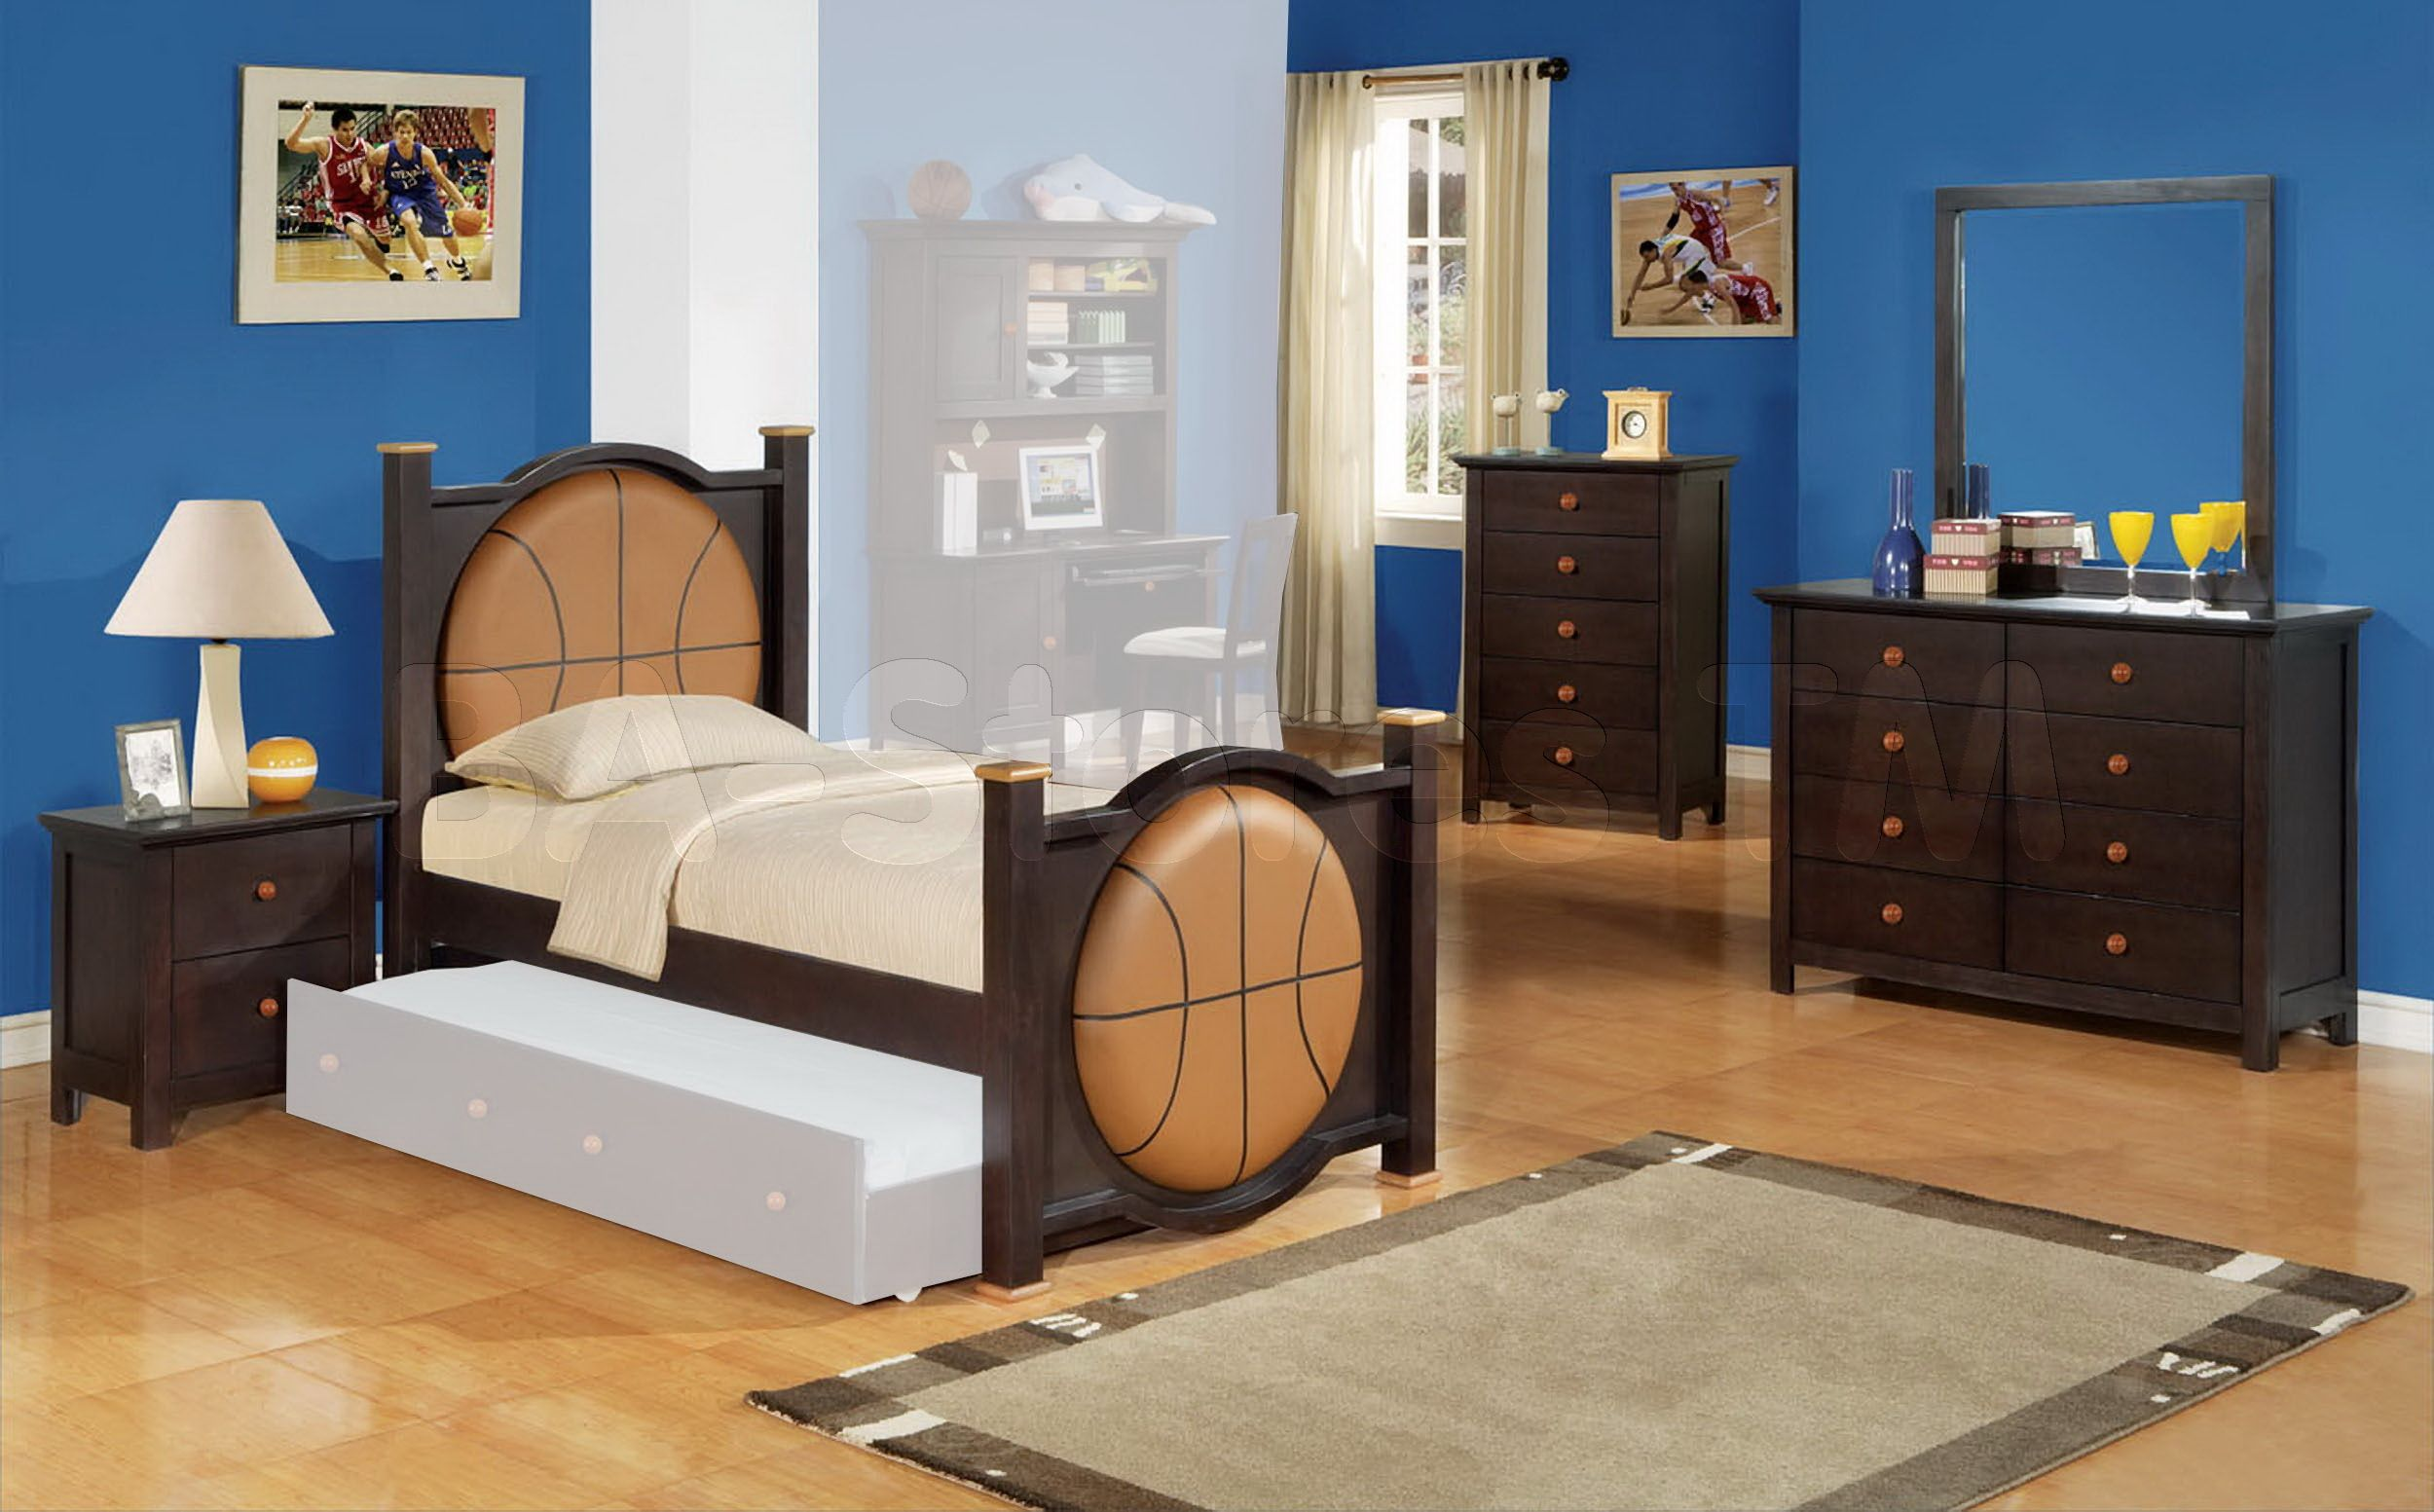 Amazing Basketball Theme Cool Rooms For Boys By A Unique Bed With